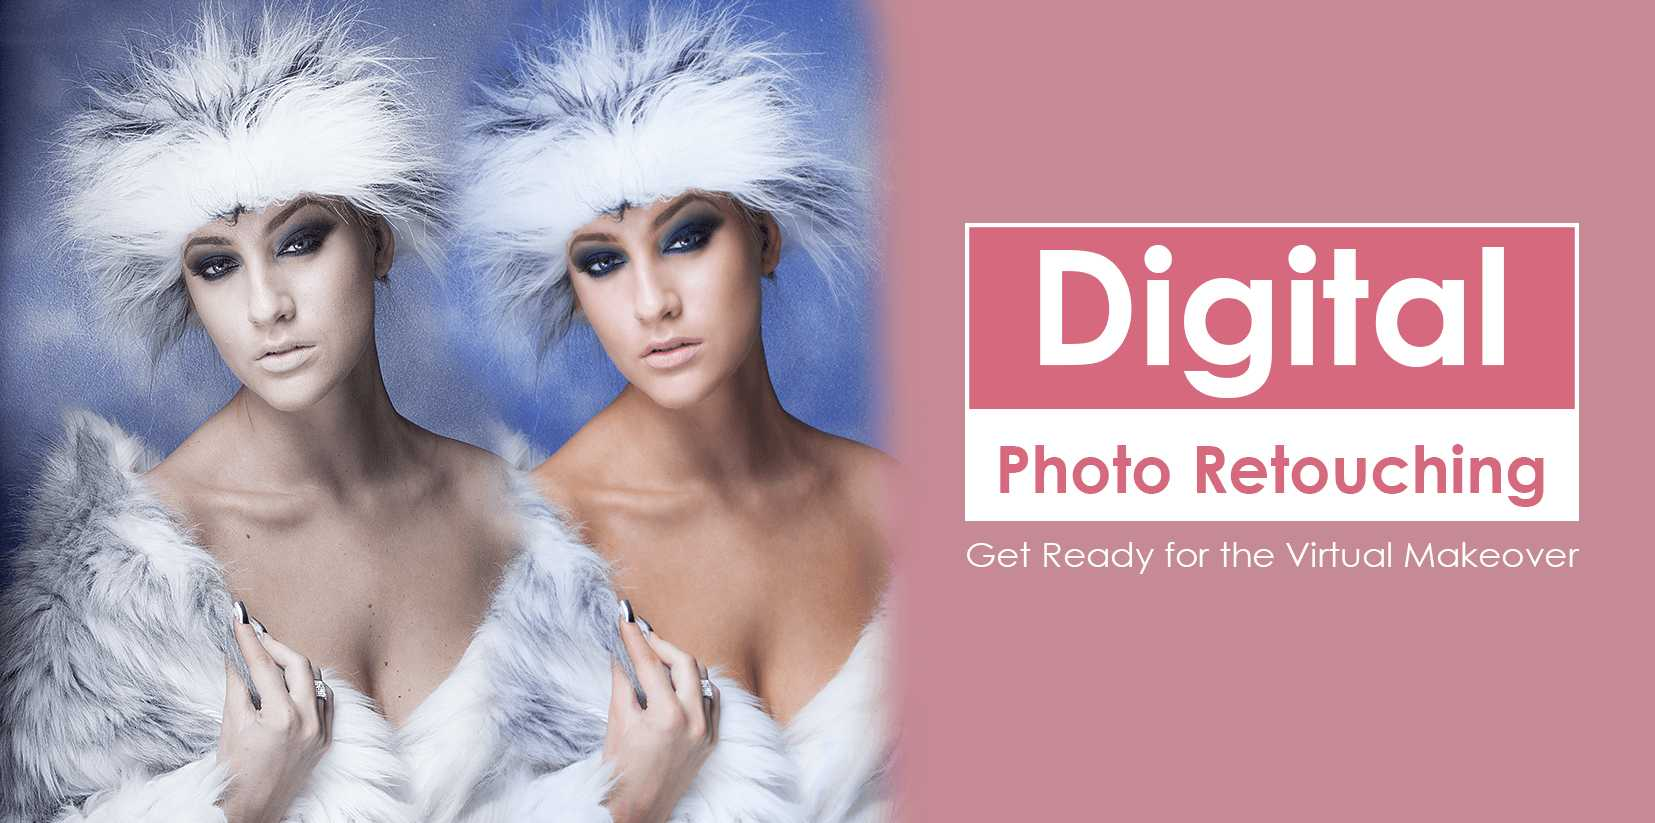 Digital-Photo-Retouching